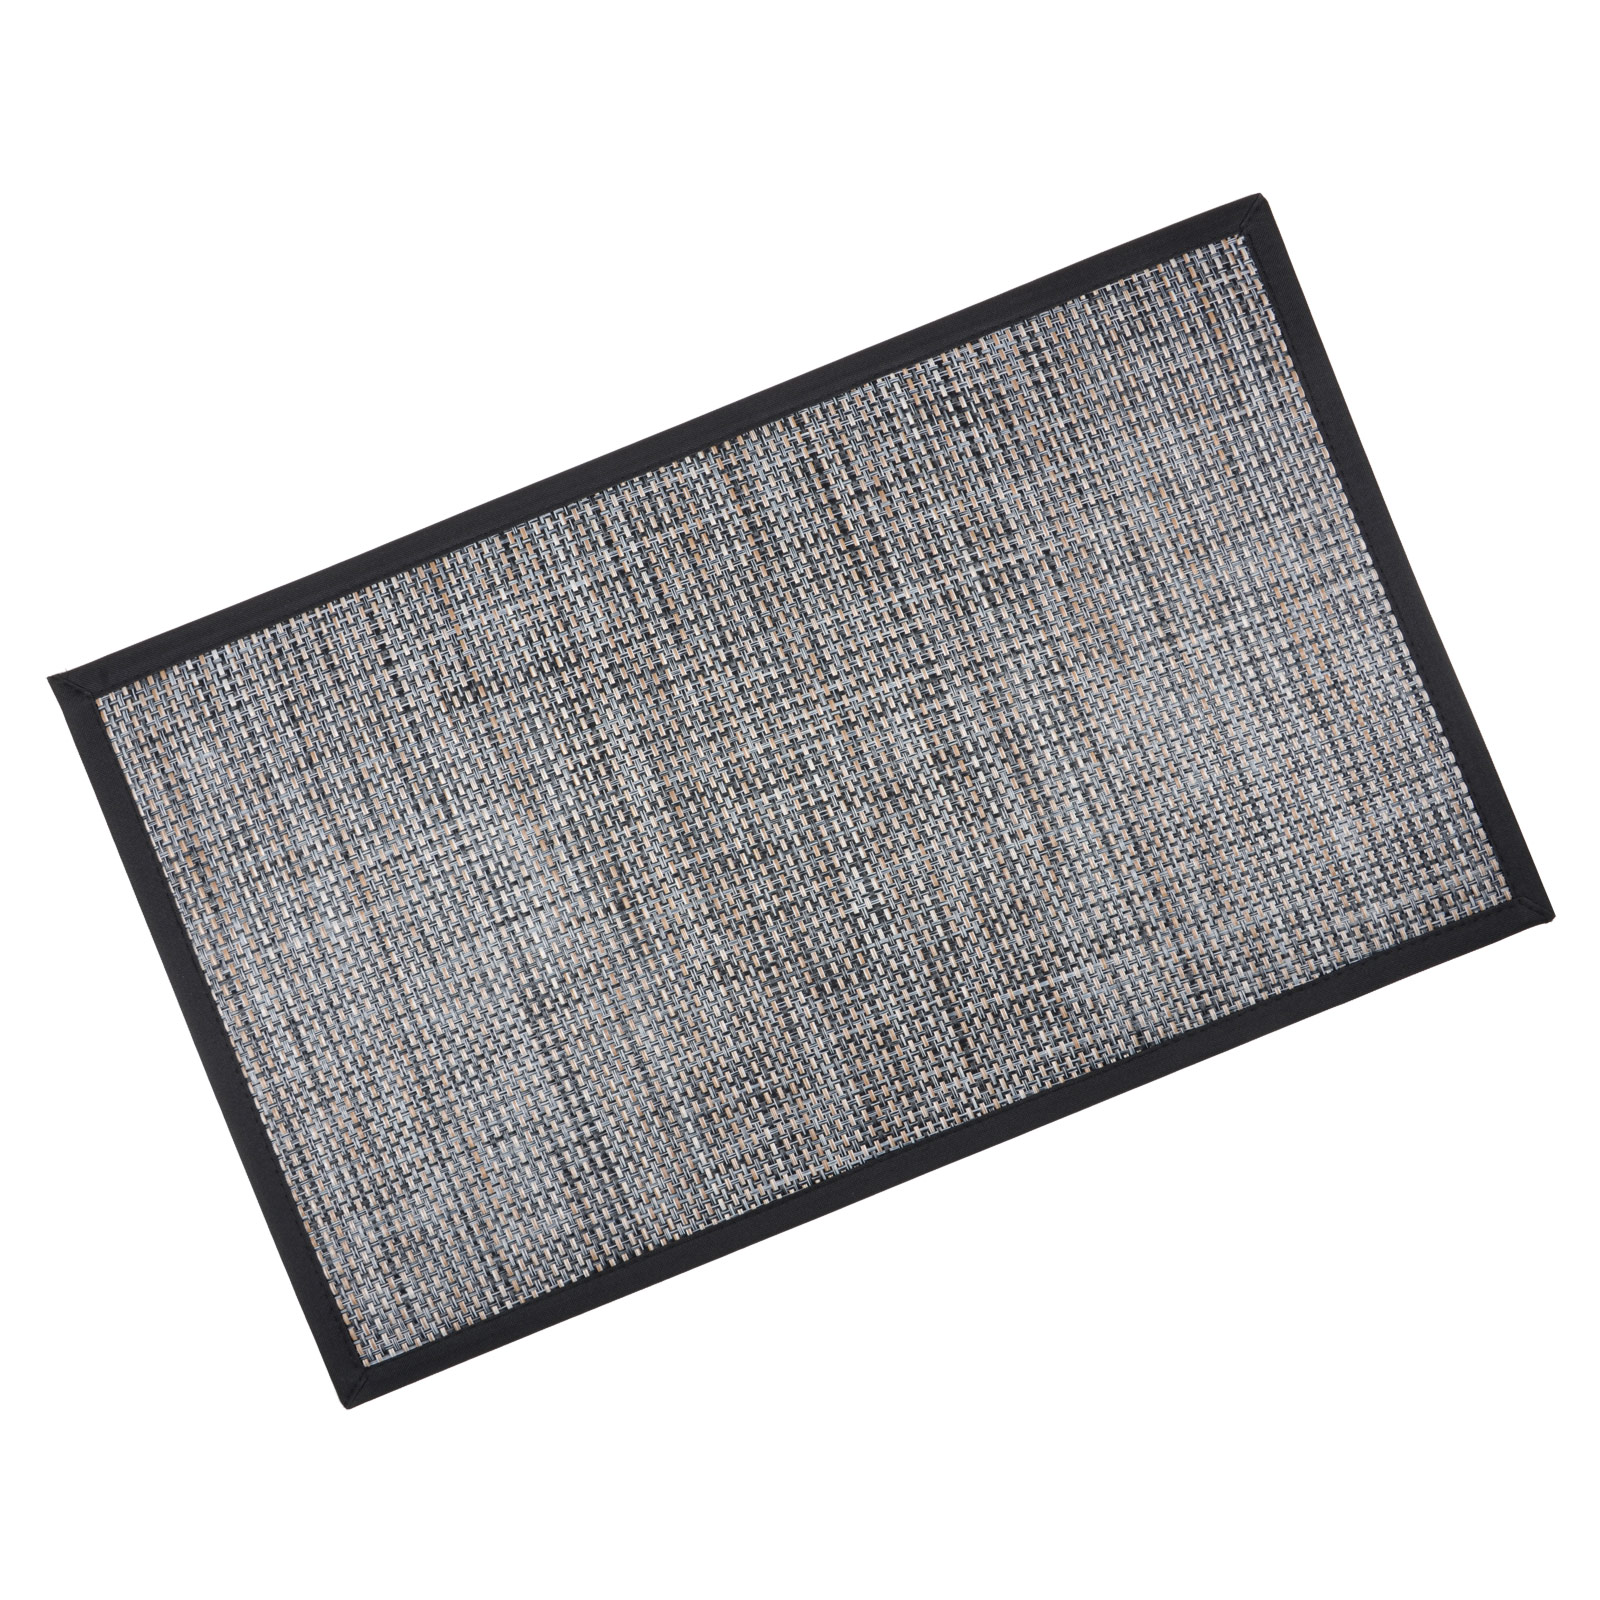 SALE  Kitchen Floor Mat Large 76 x 46cm Size  Strong Durable Easy Wipe Clean  eBay